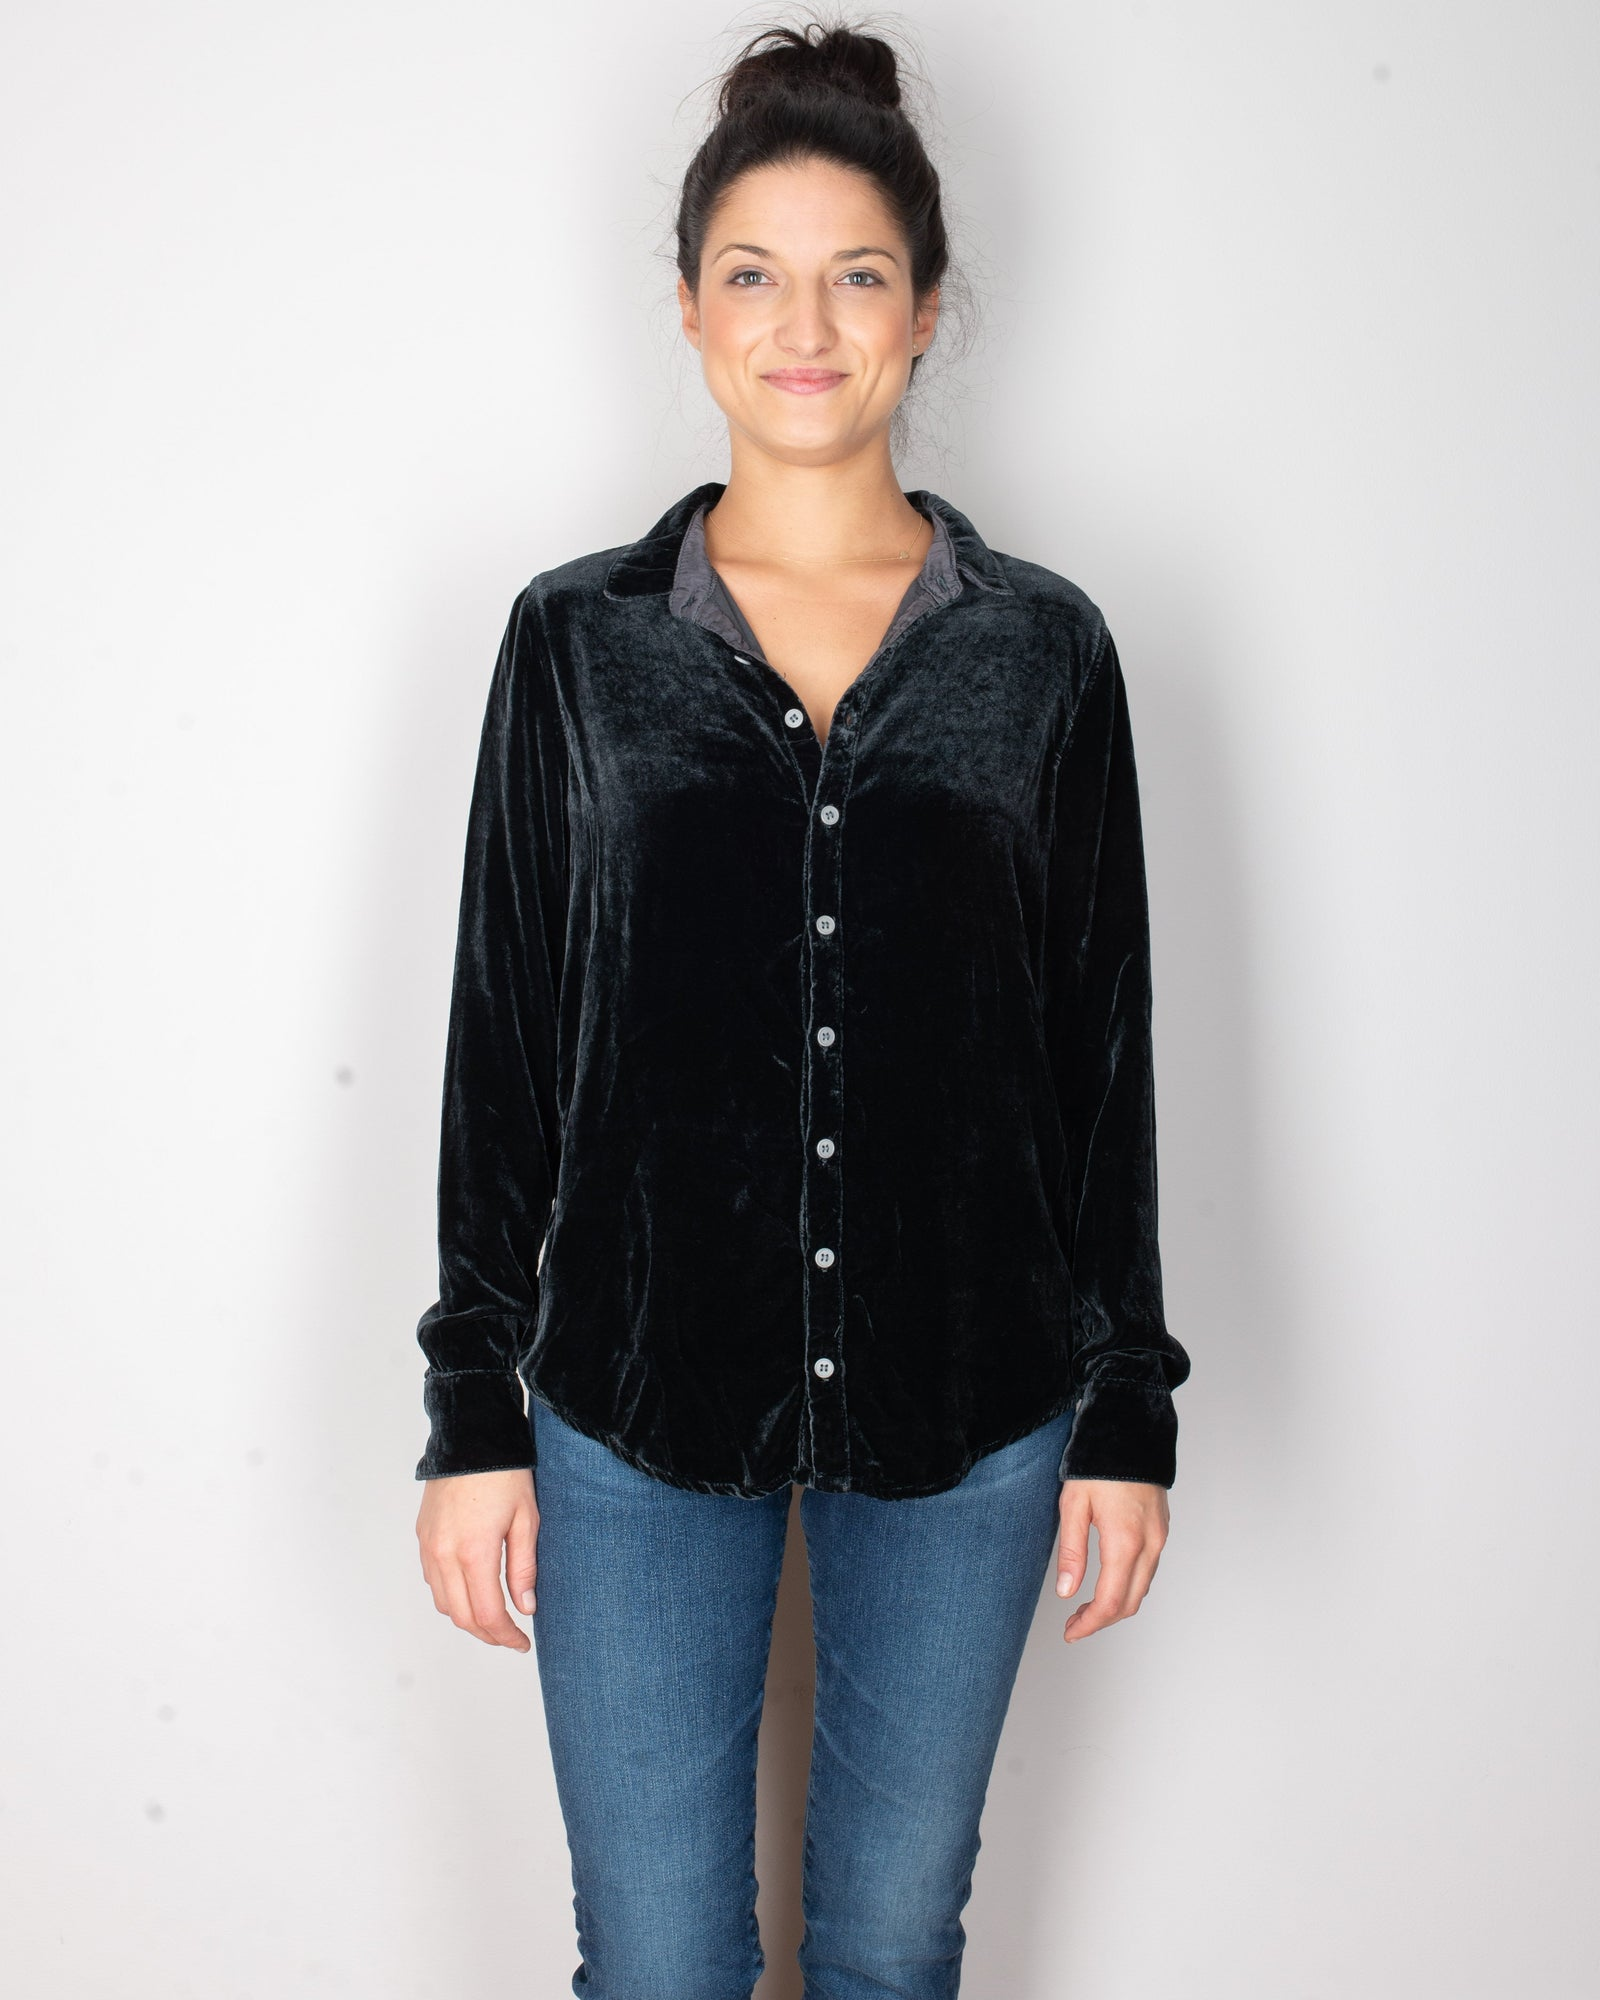 CP Shades Clothing River Rock / XS Romy Blouse in River Rock Silk Velvet